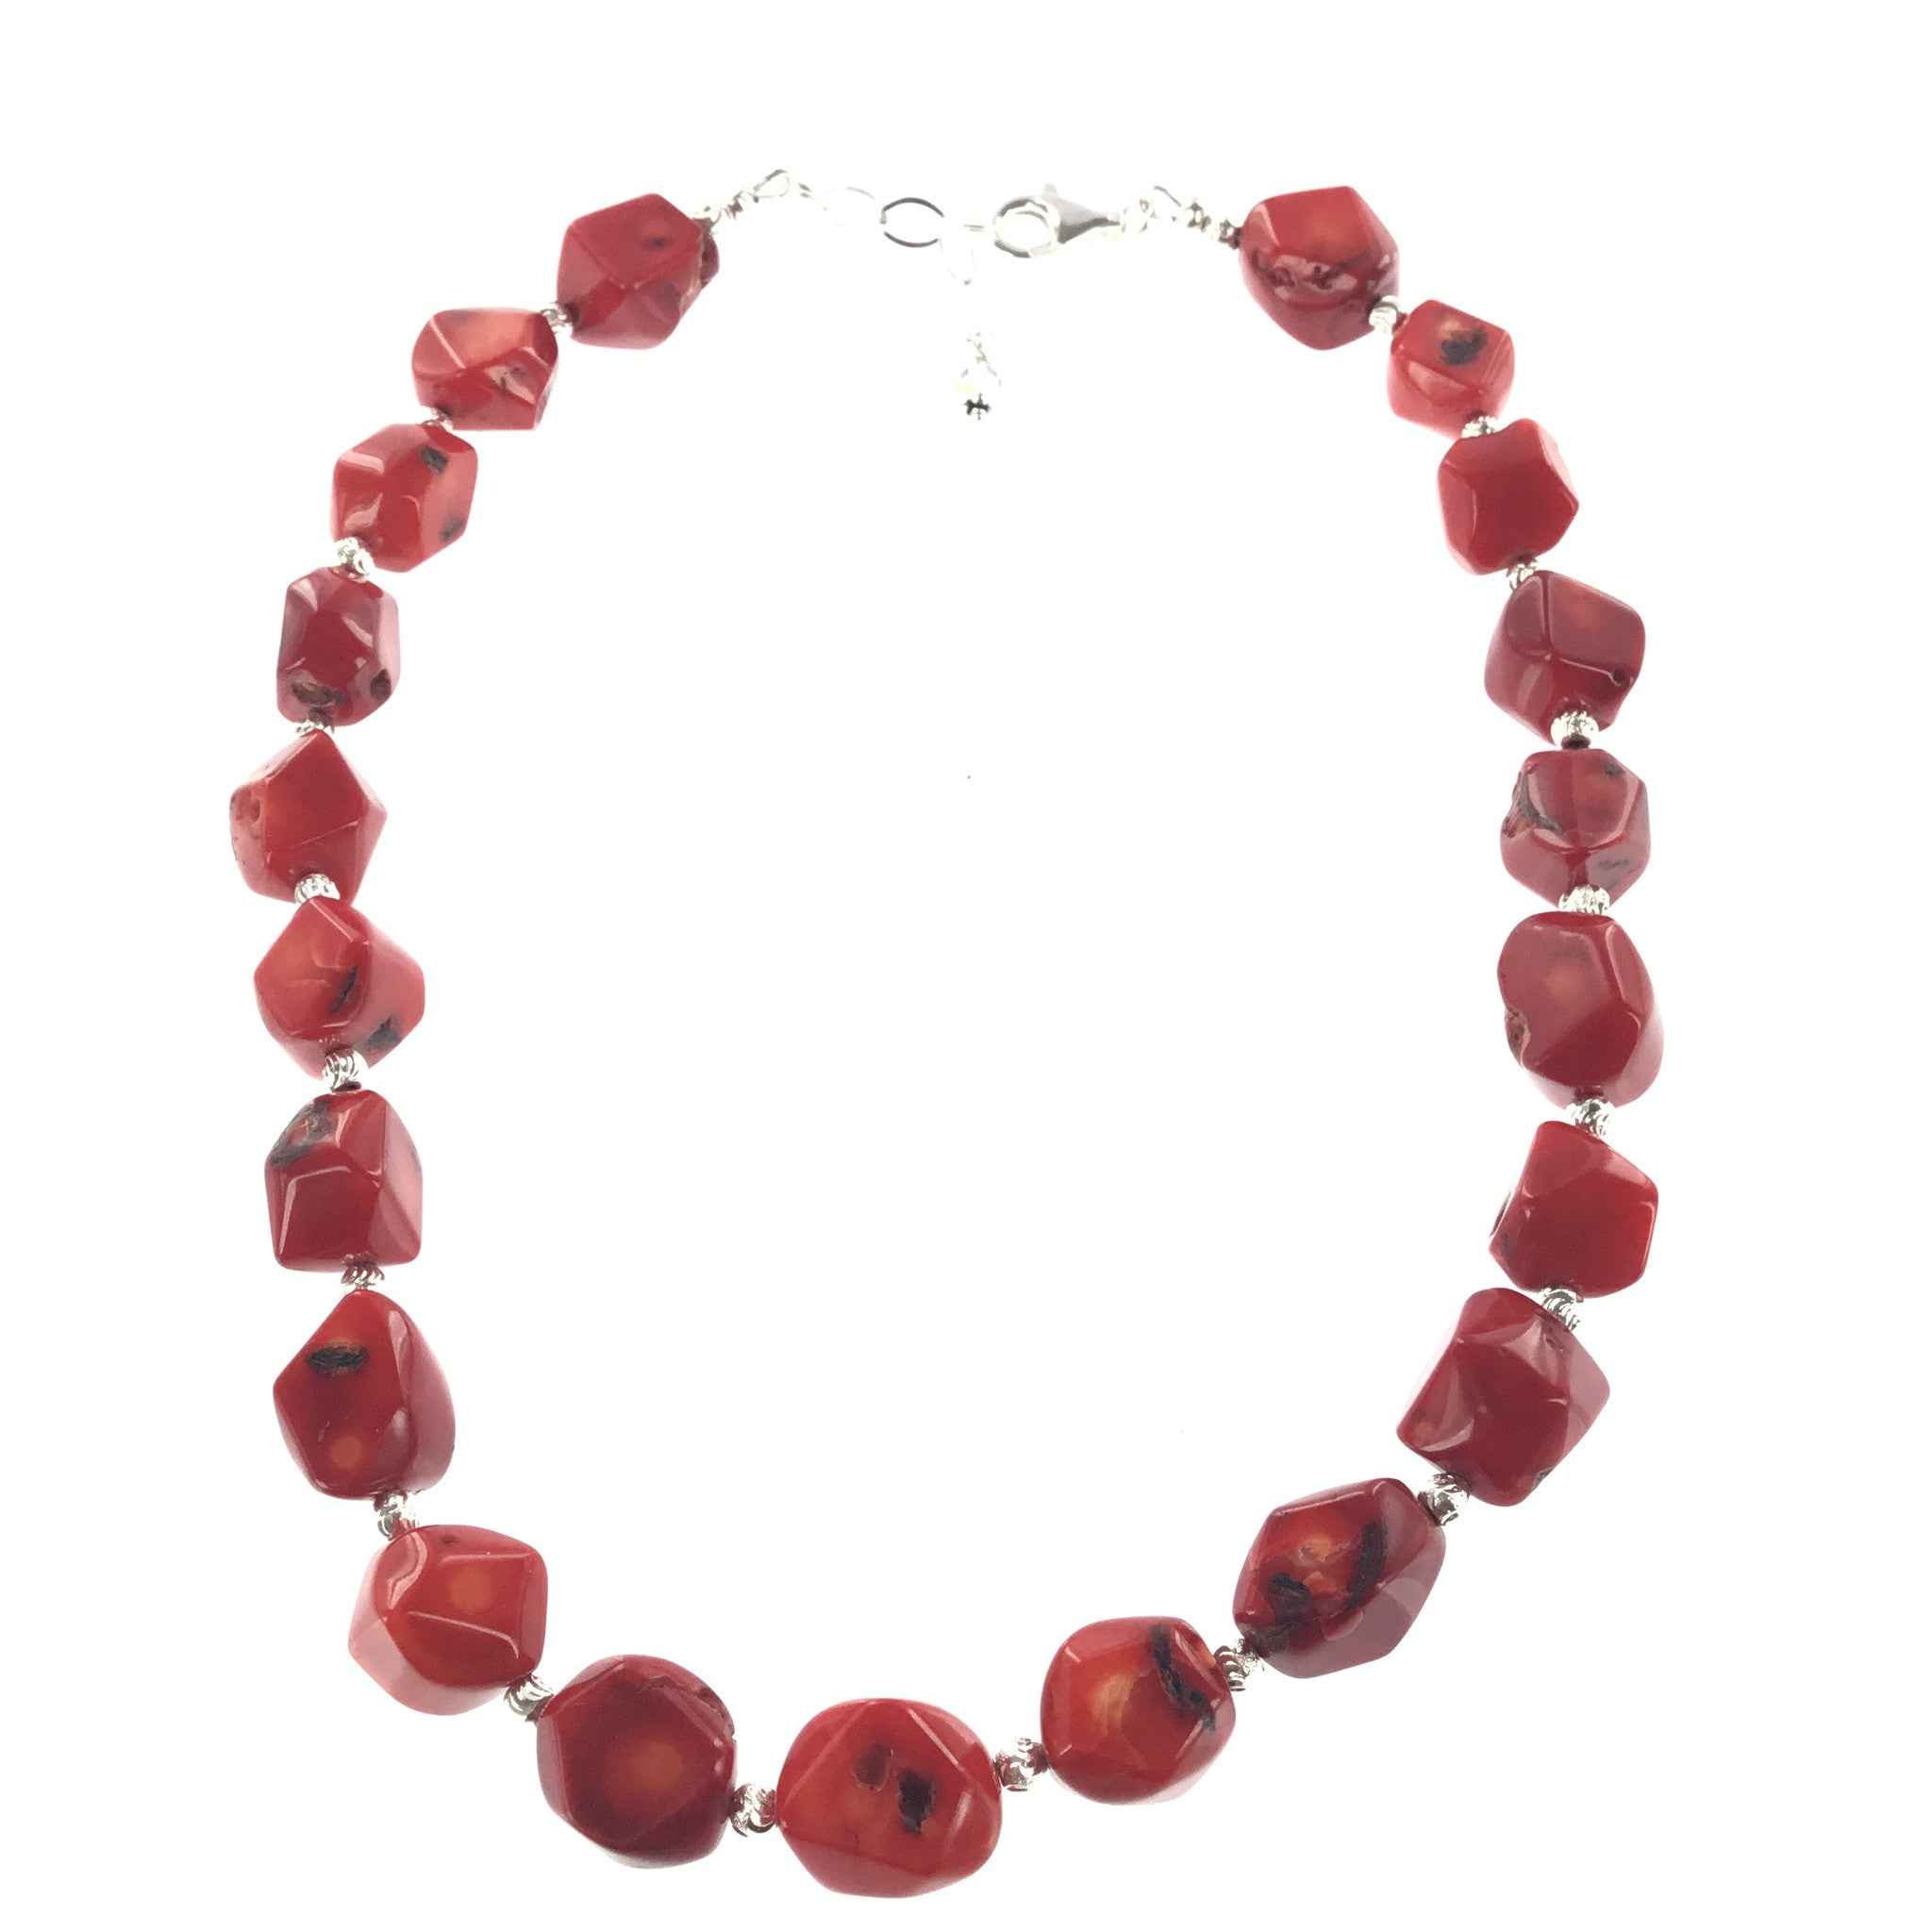 Red Coral and Silver Necklace - Real Chic Boutique  - 1